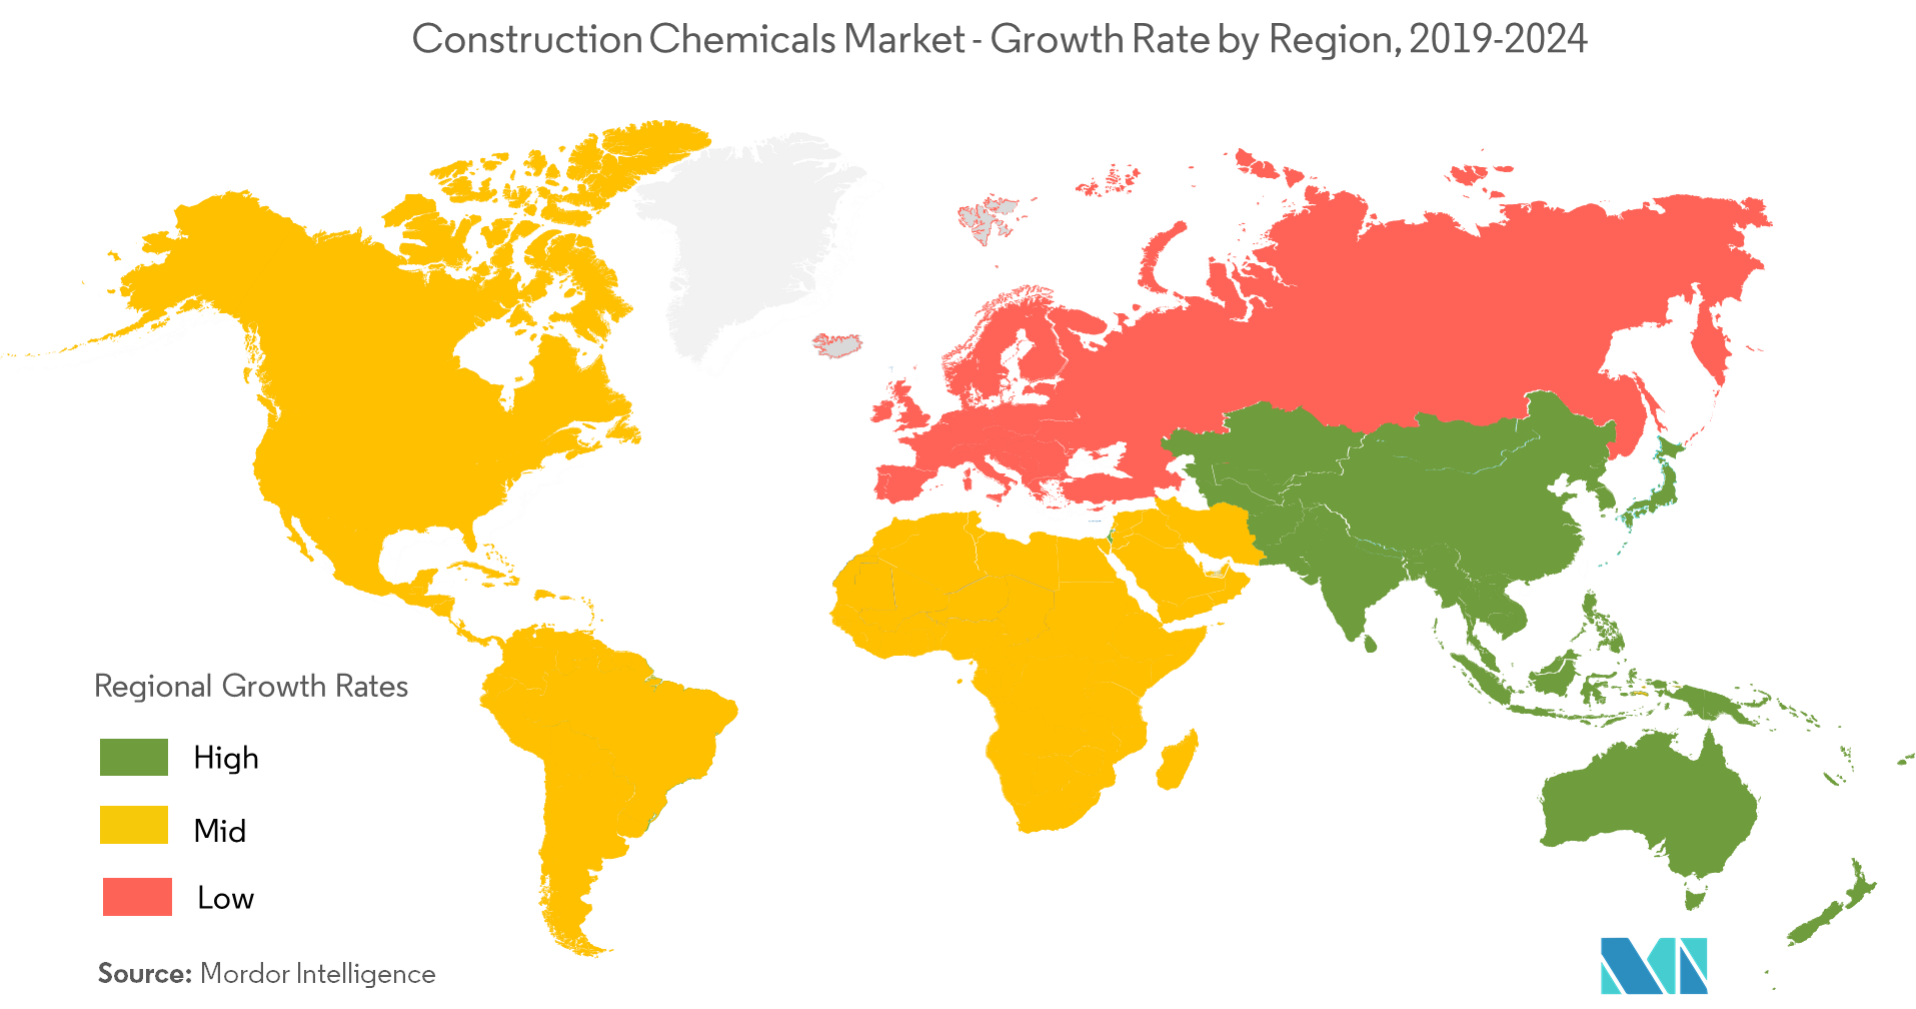 Geography - Europe Construction Chemicals market